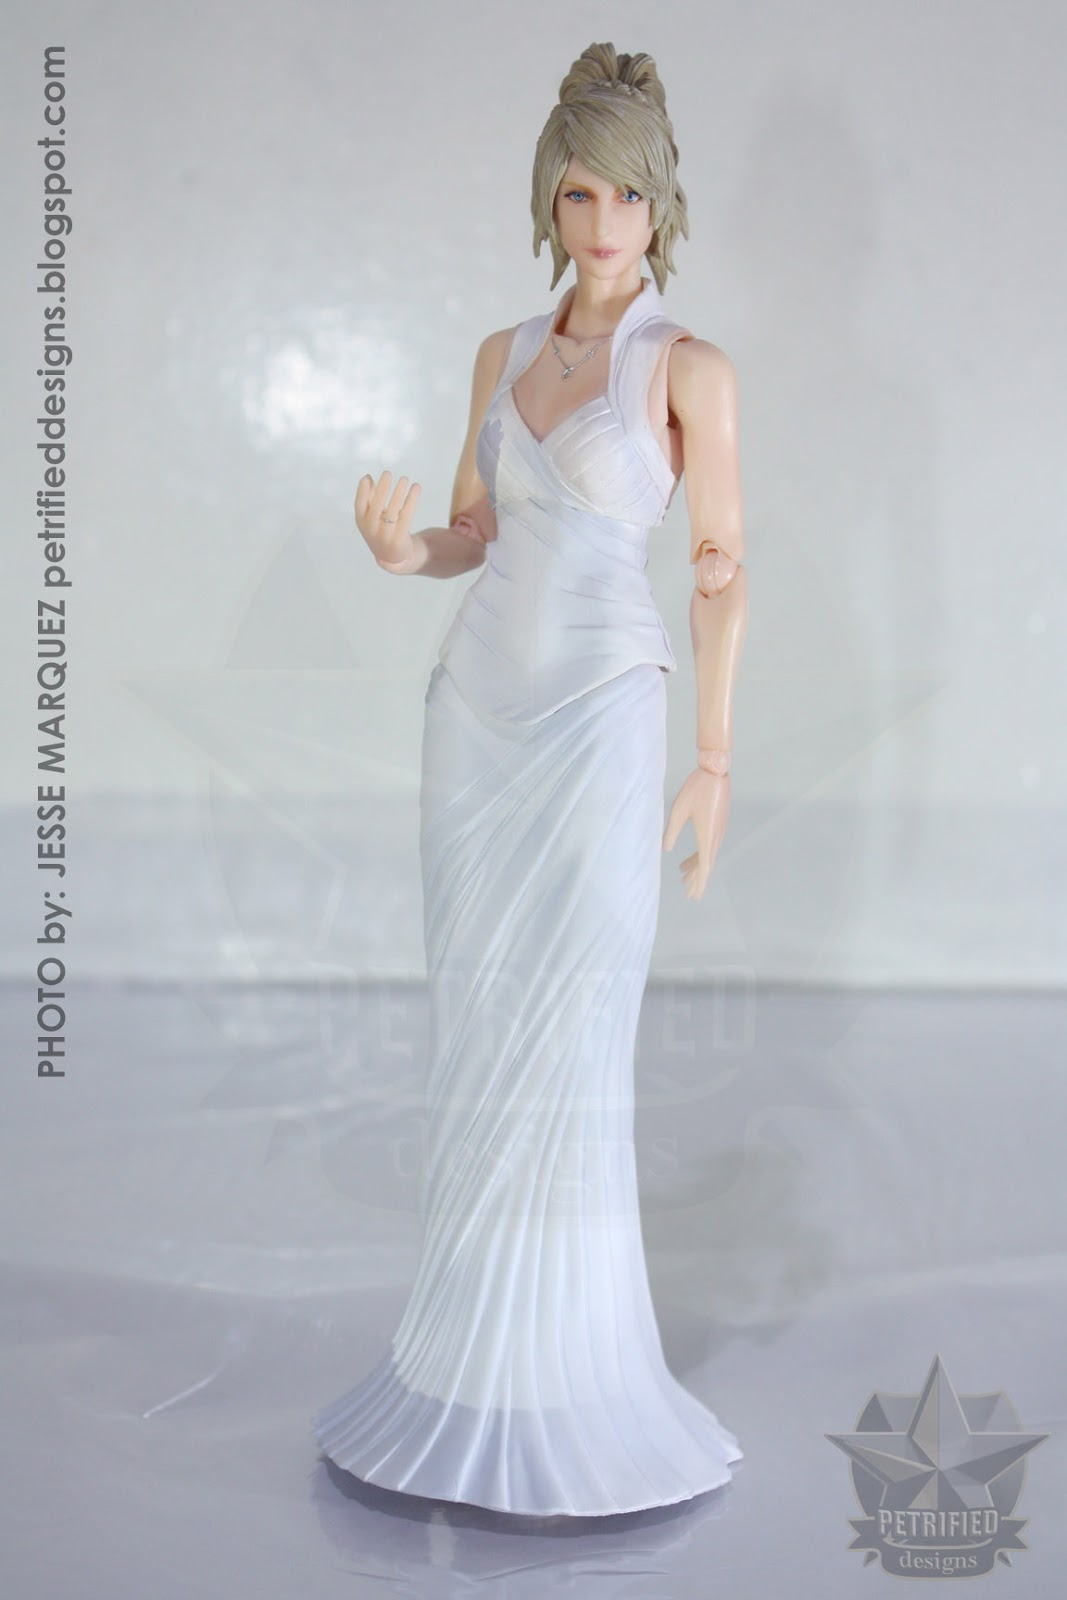 Randomly Random: [Toy Review] LUNAFREYA NOX FLEURET - Final Fantasy ...